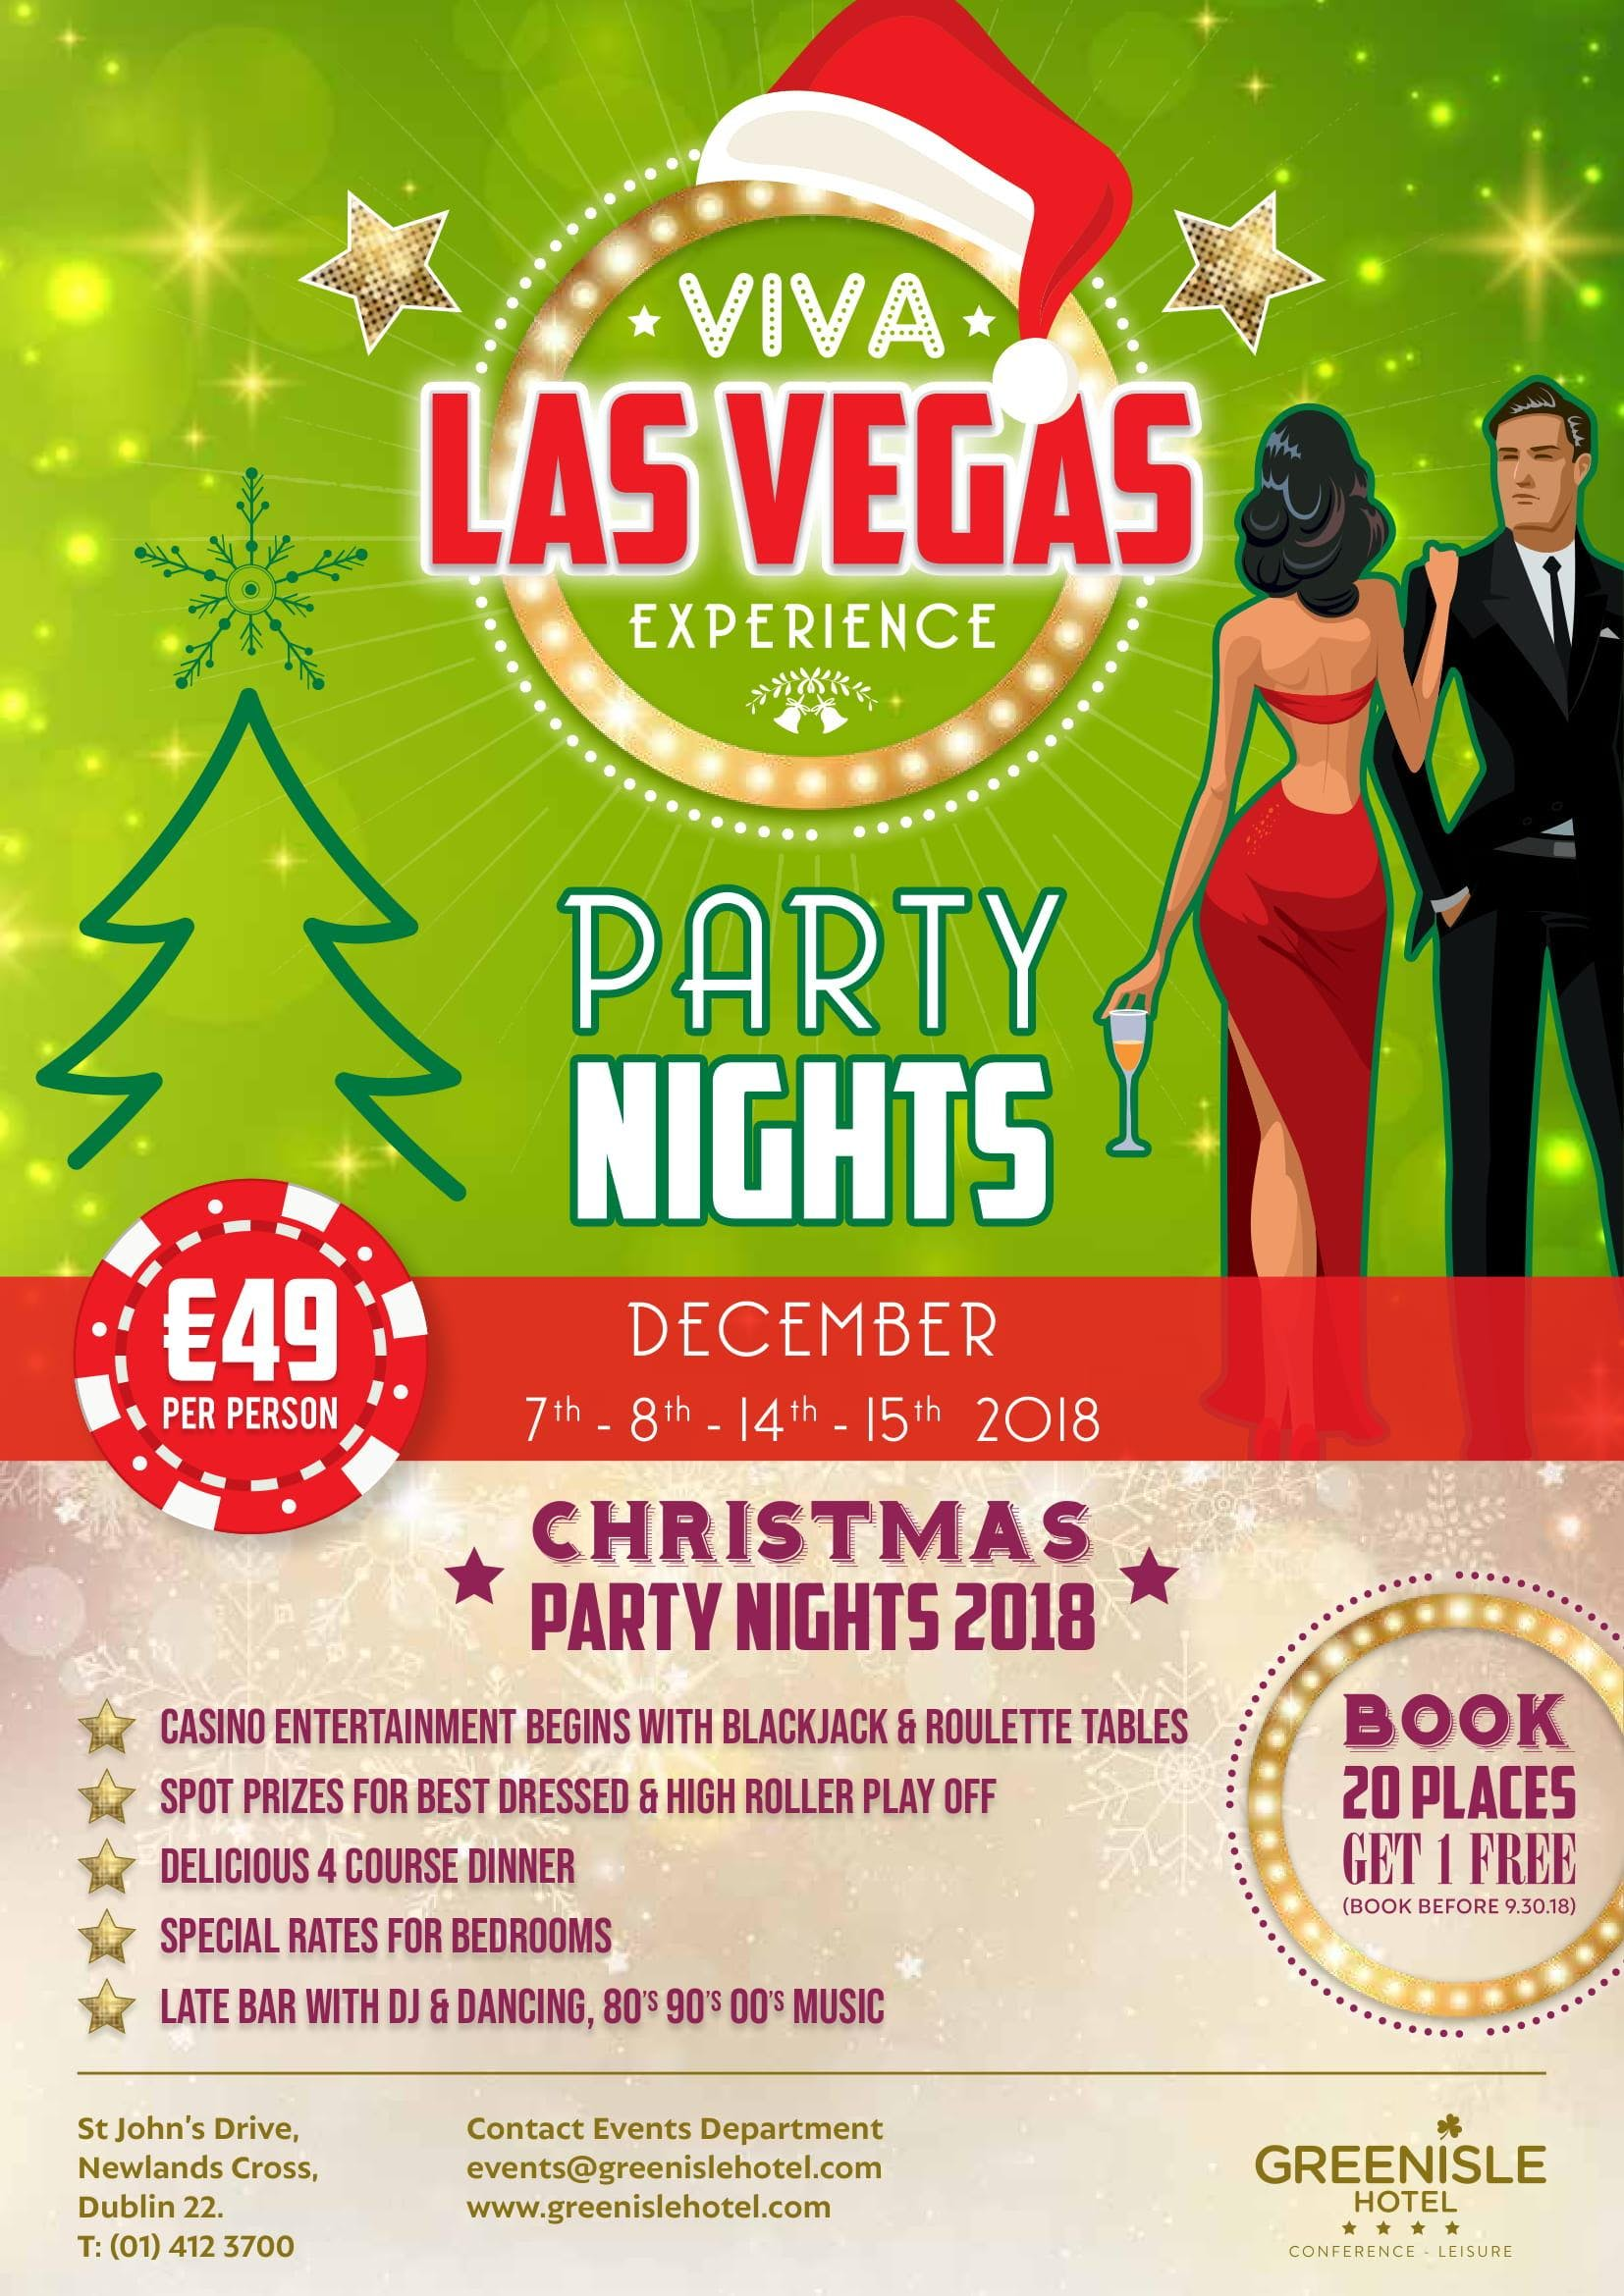 Las Vegas Experience Christmas Party